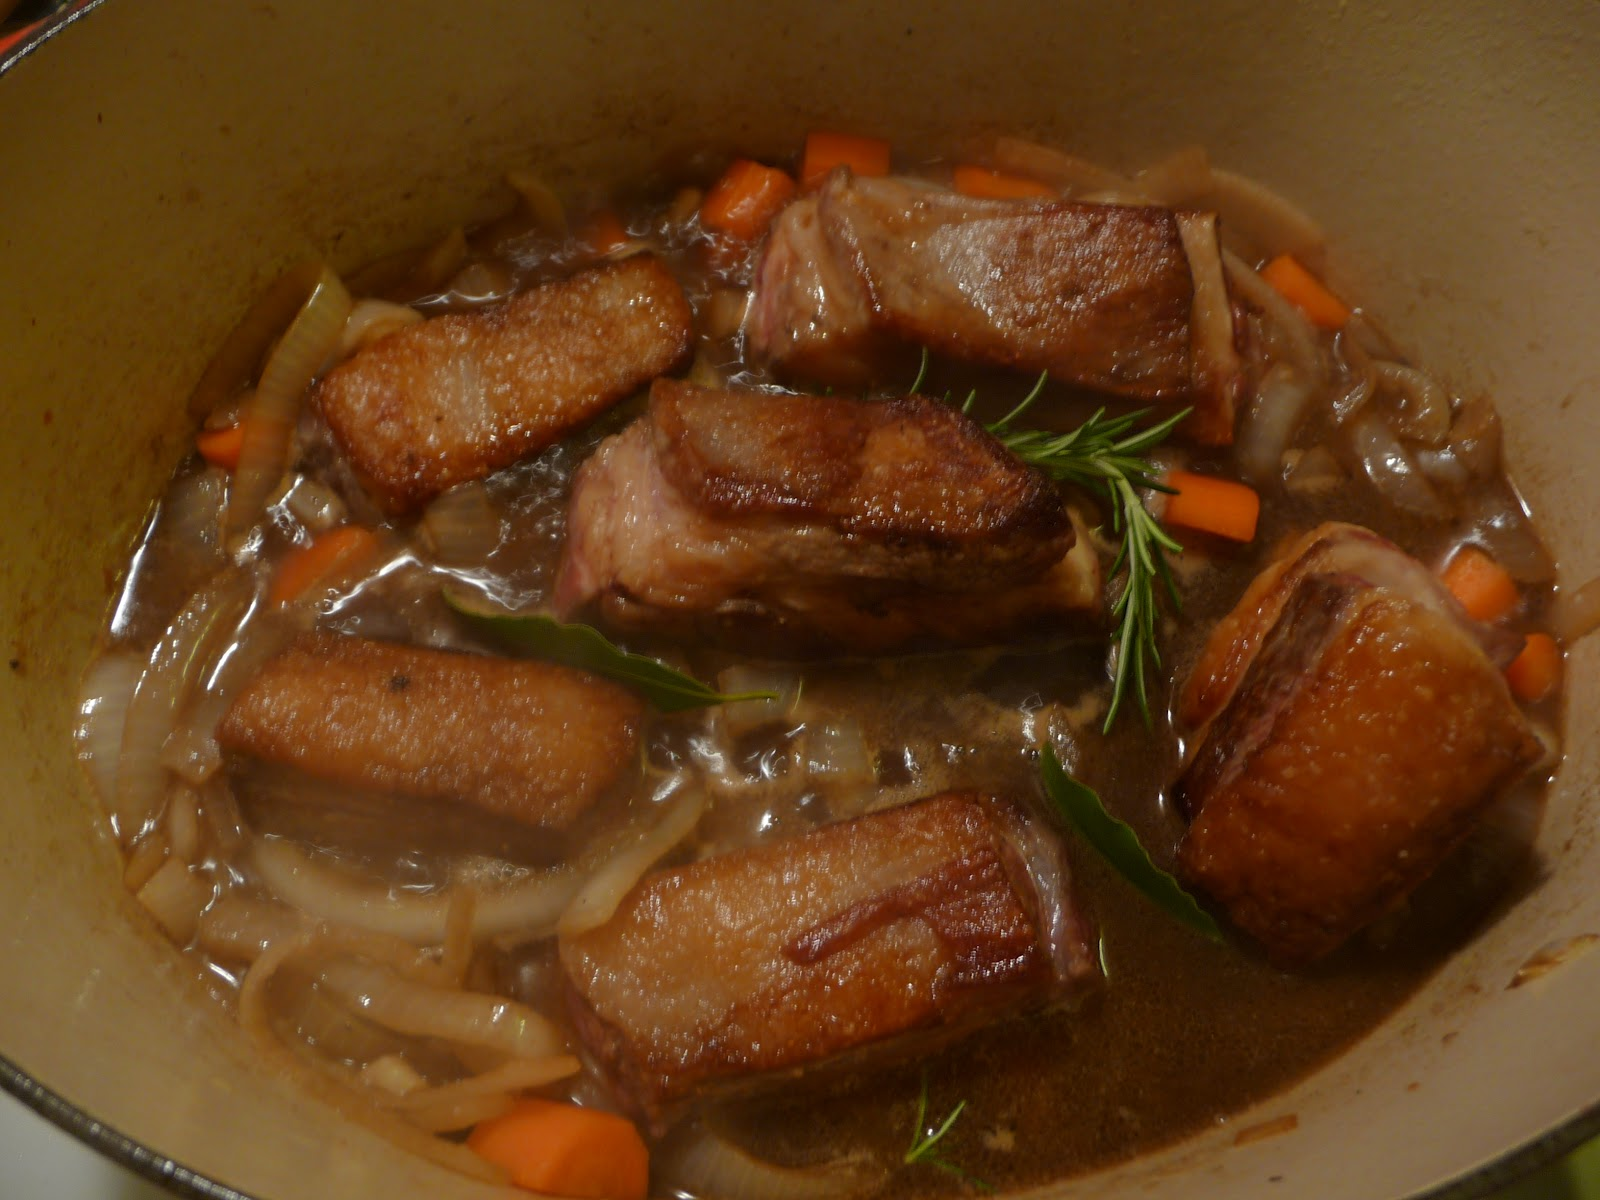 ... Portland: Short Ribs Braised in Porter with Molasses-Rosemary Glaze